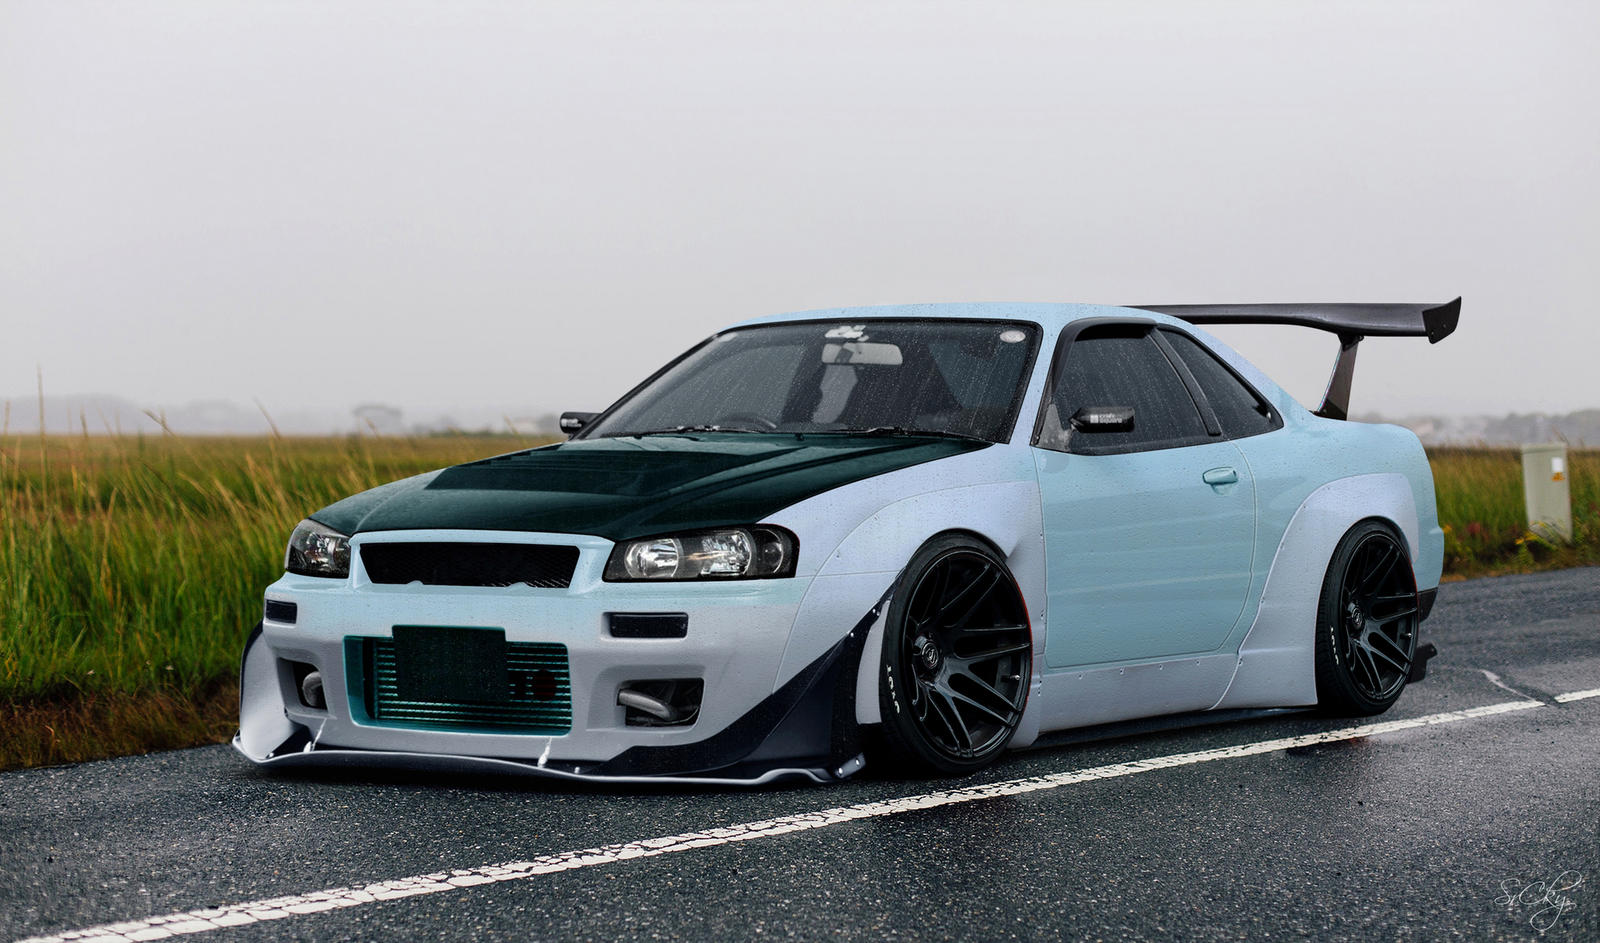 nissan skyline r34 body kit by srcky on deviantart. Black Bedroom Furniture Sets. Home Design Ideas